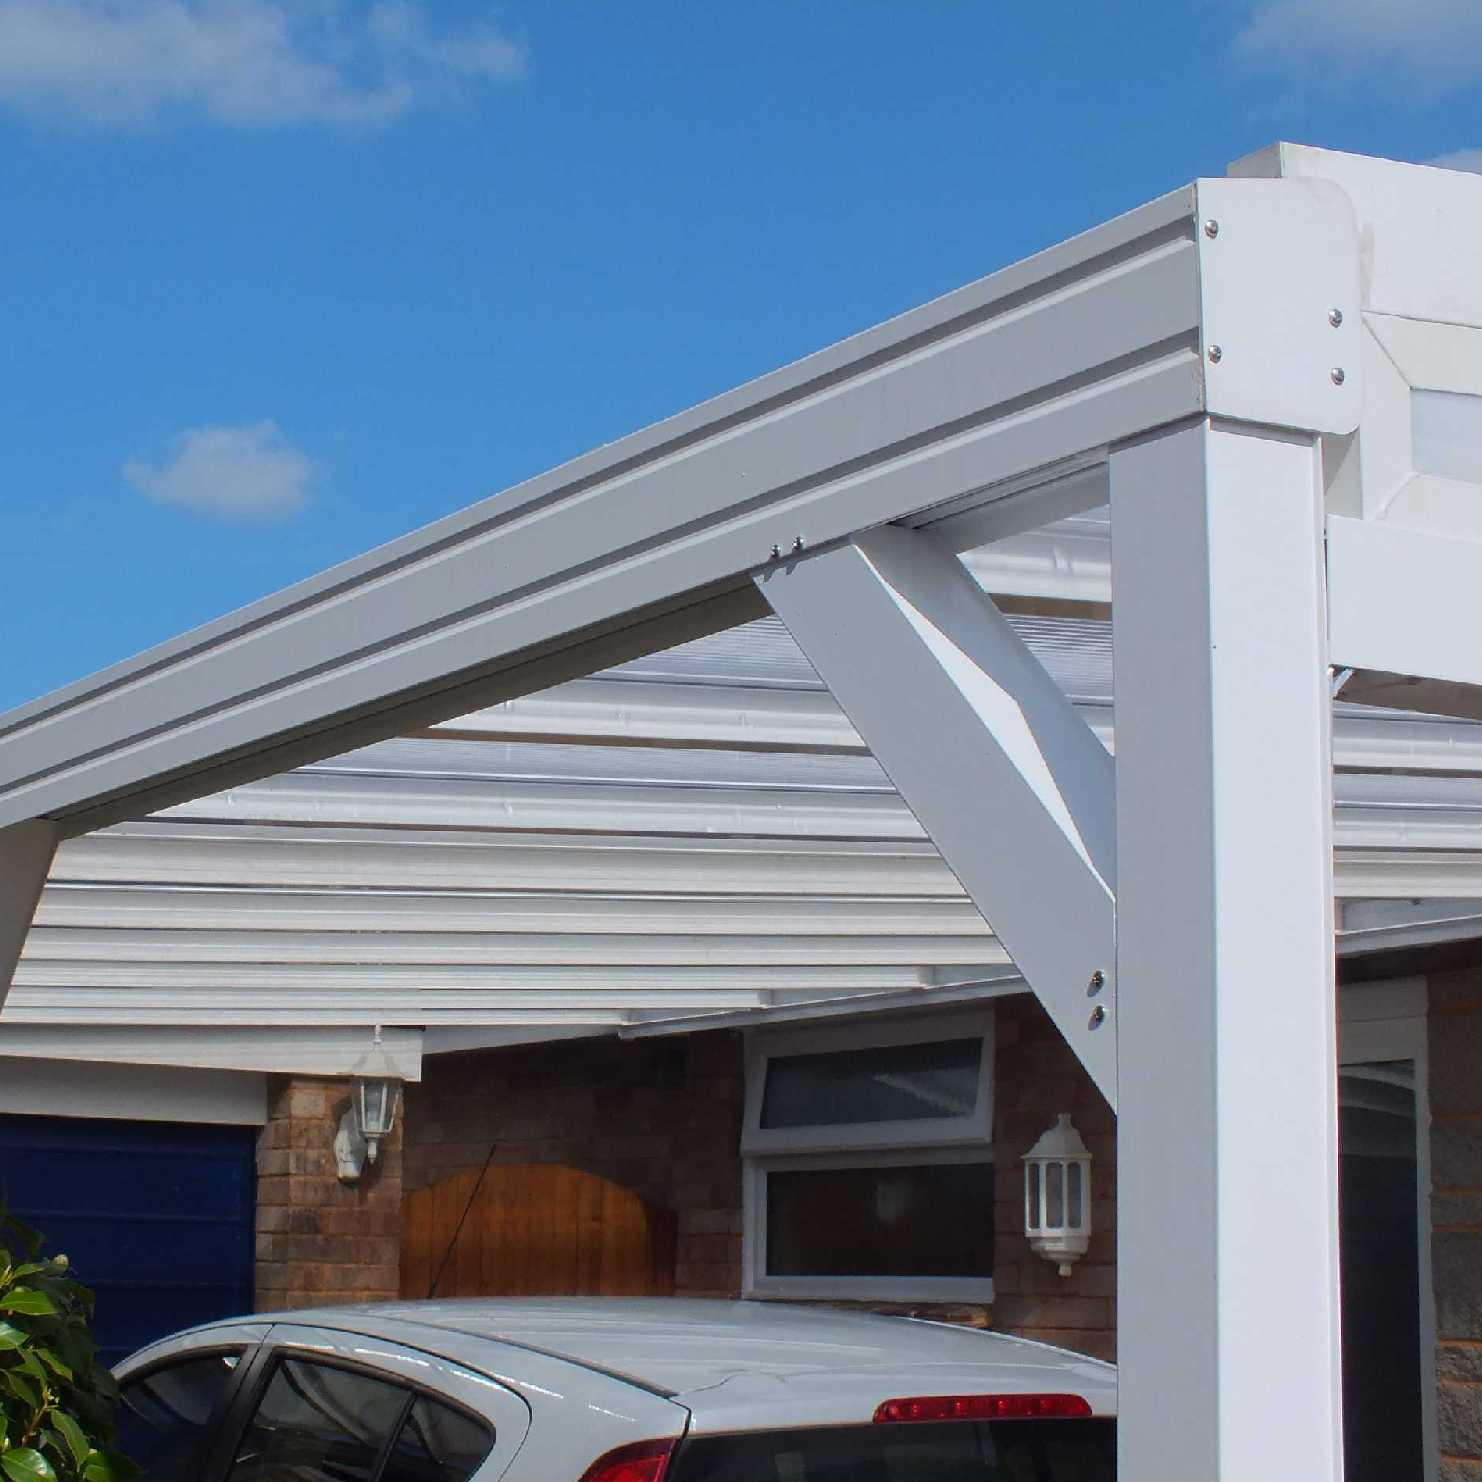 Great deals on Omega Smart White Lean-To Canopy with 16mm Polycarbonate Glazing - 6.0m (W) x 2.5m (P), (3) Supporting Posts